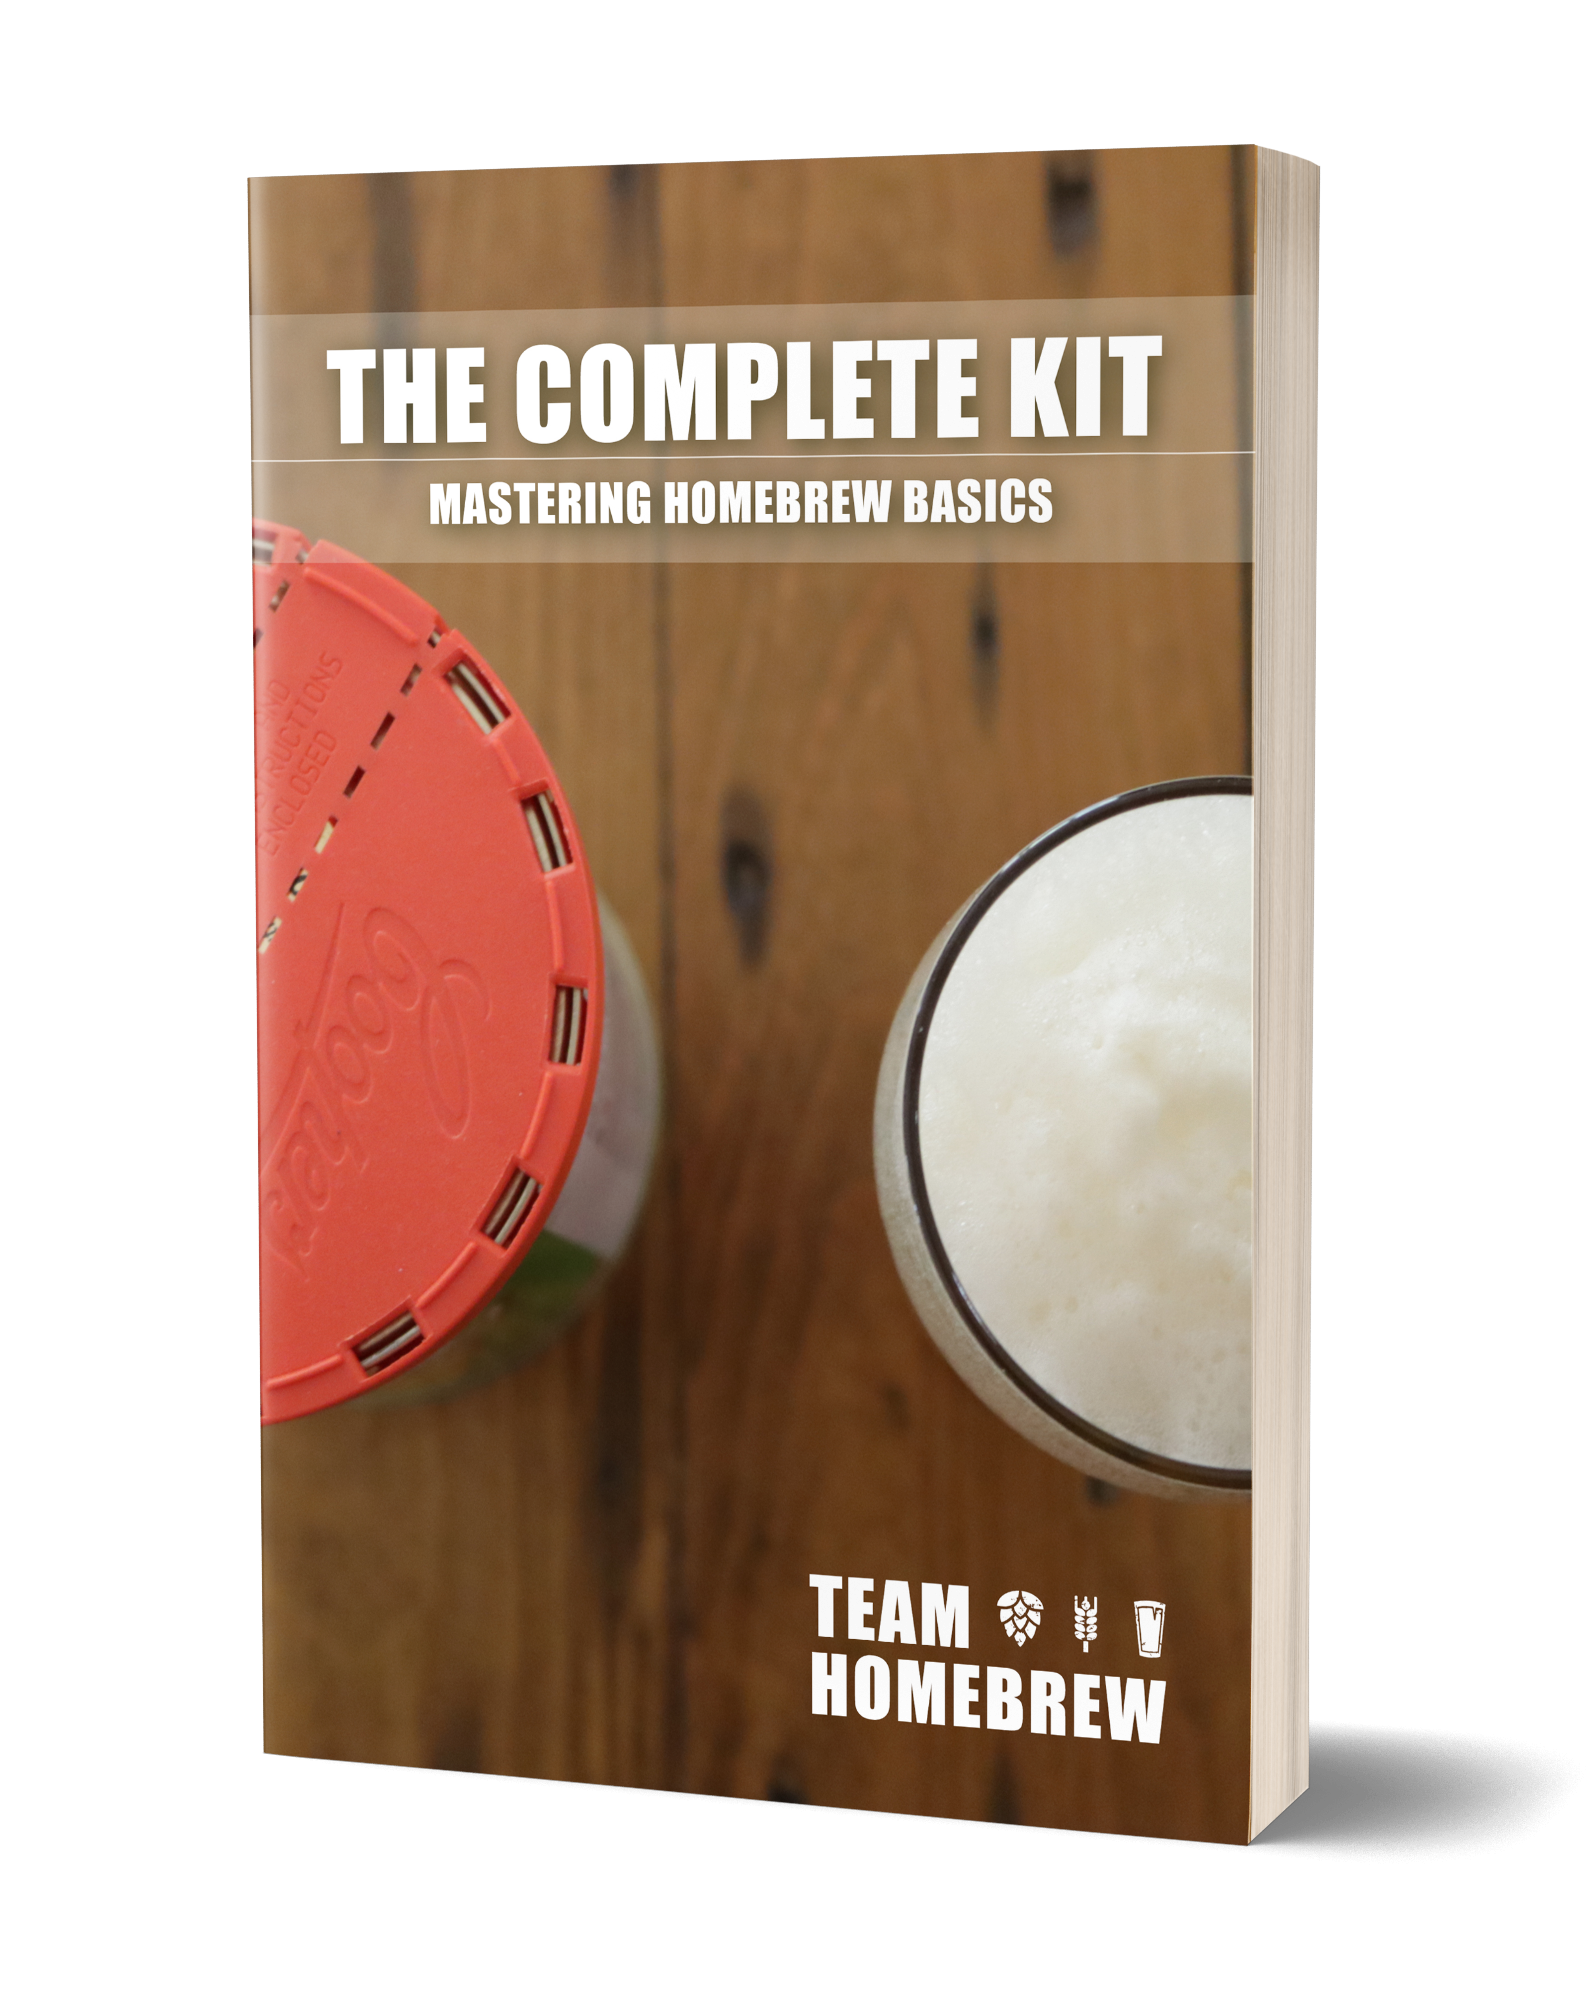 Learn how to add hops to homebrew kits